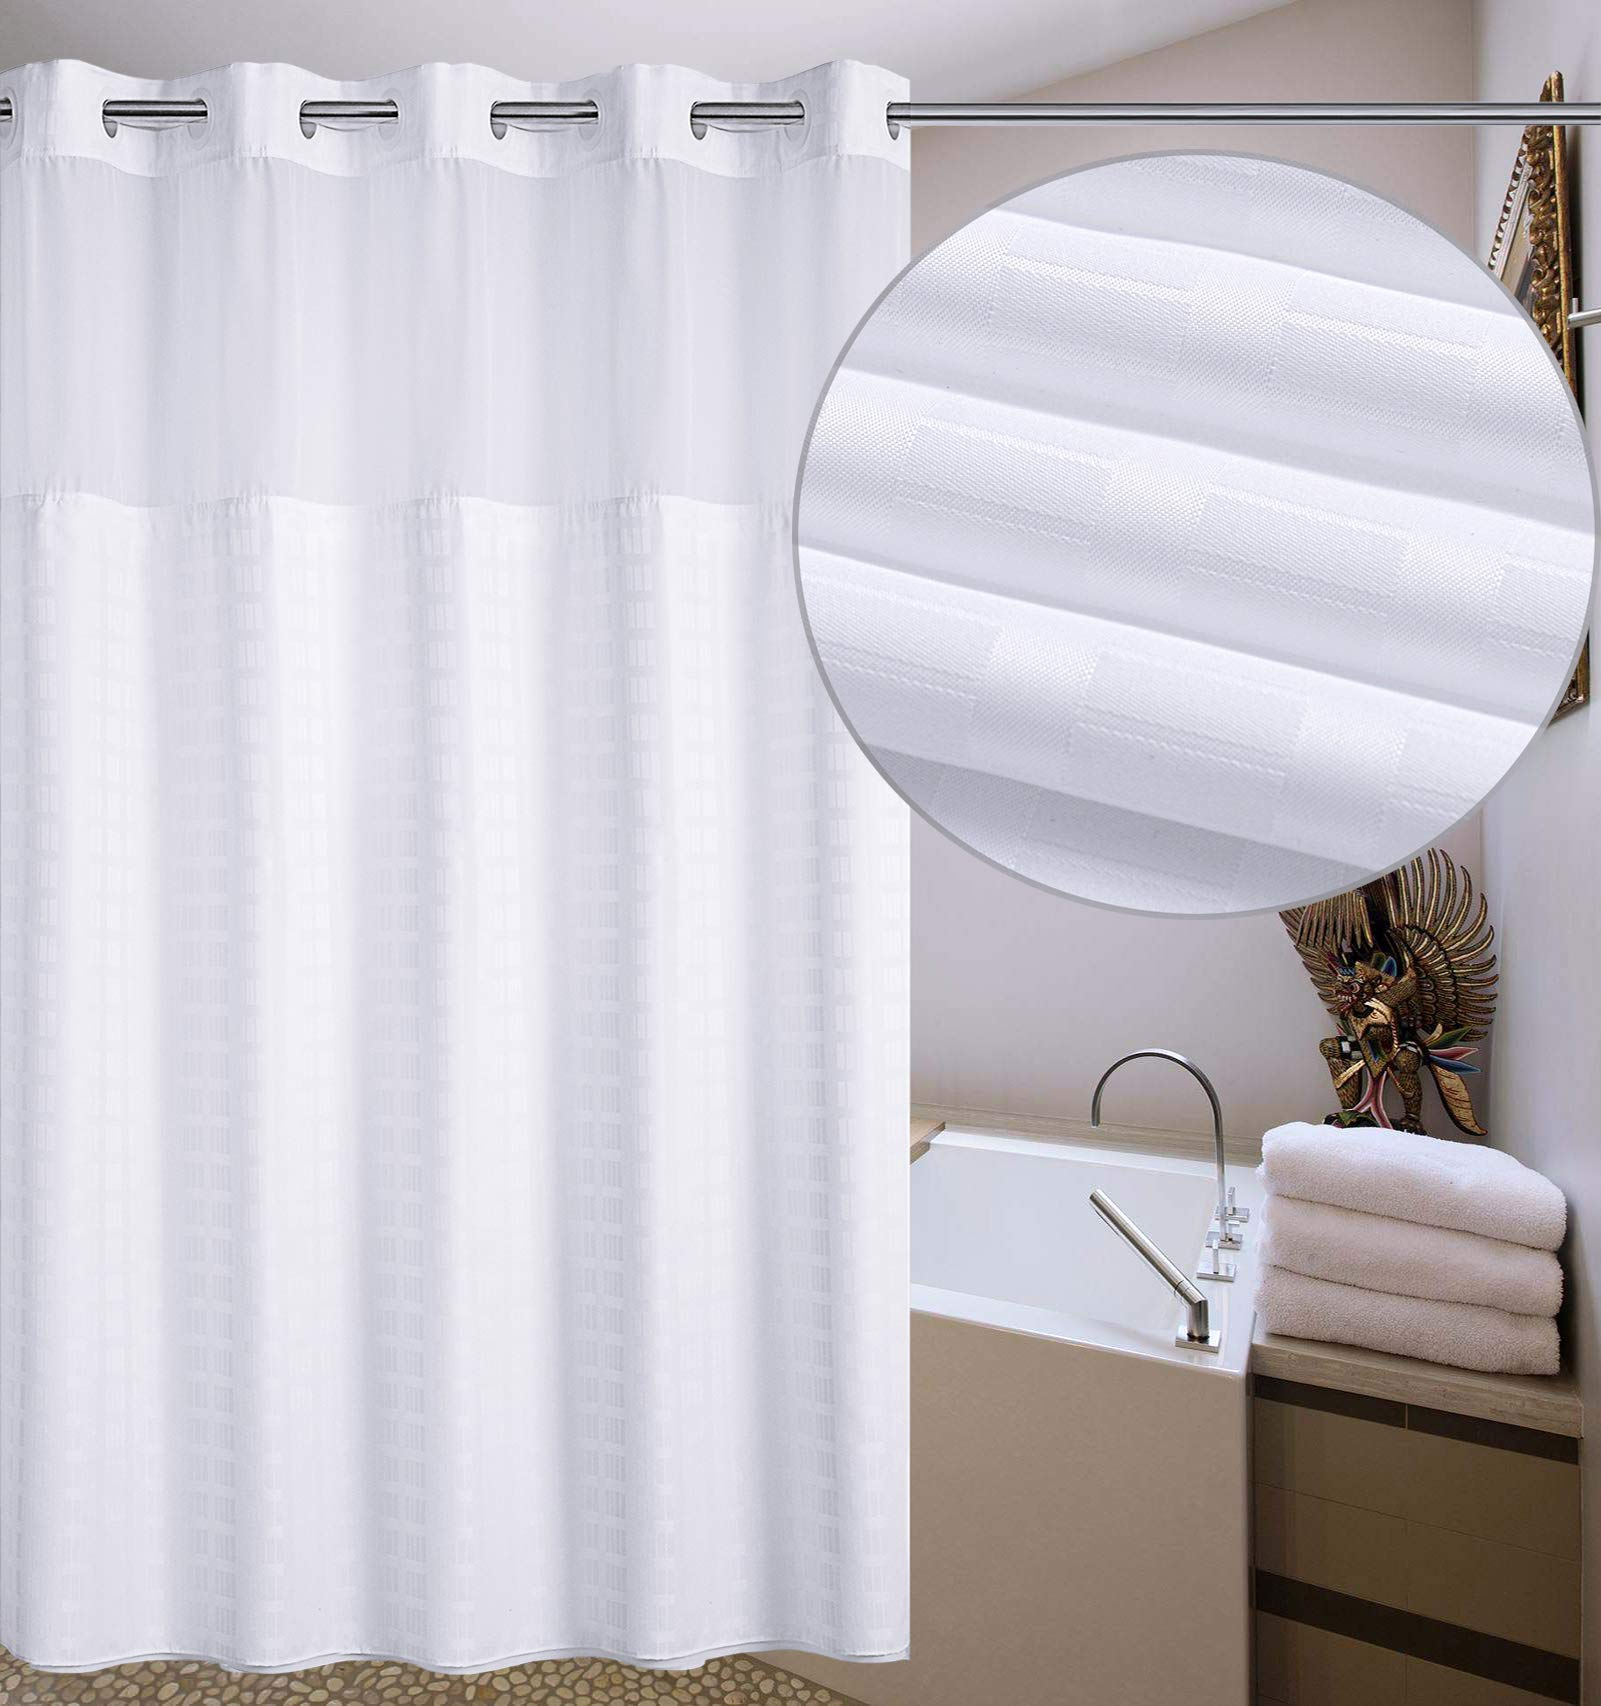 Conbo Mio Hookless Shower Curtain with Snap in Liner for Bathroom Waterproof Anti Mildew Bacterial Resistant Rust Proof with Magnet Premium ABS Flex On Rings (White, 72'' x 72'')